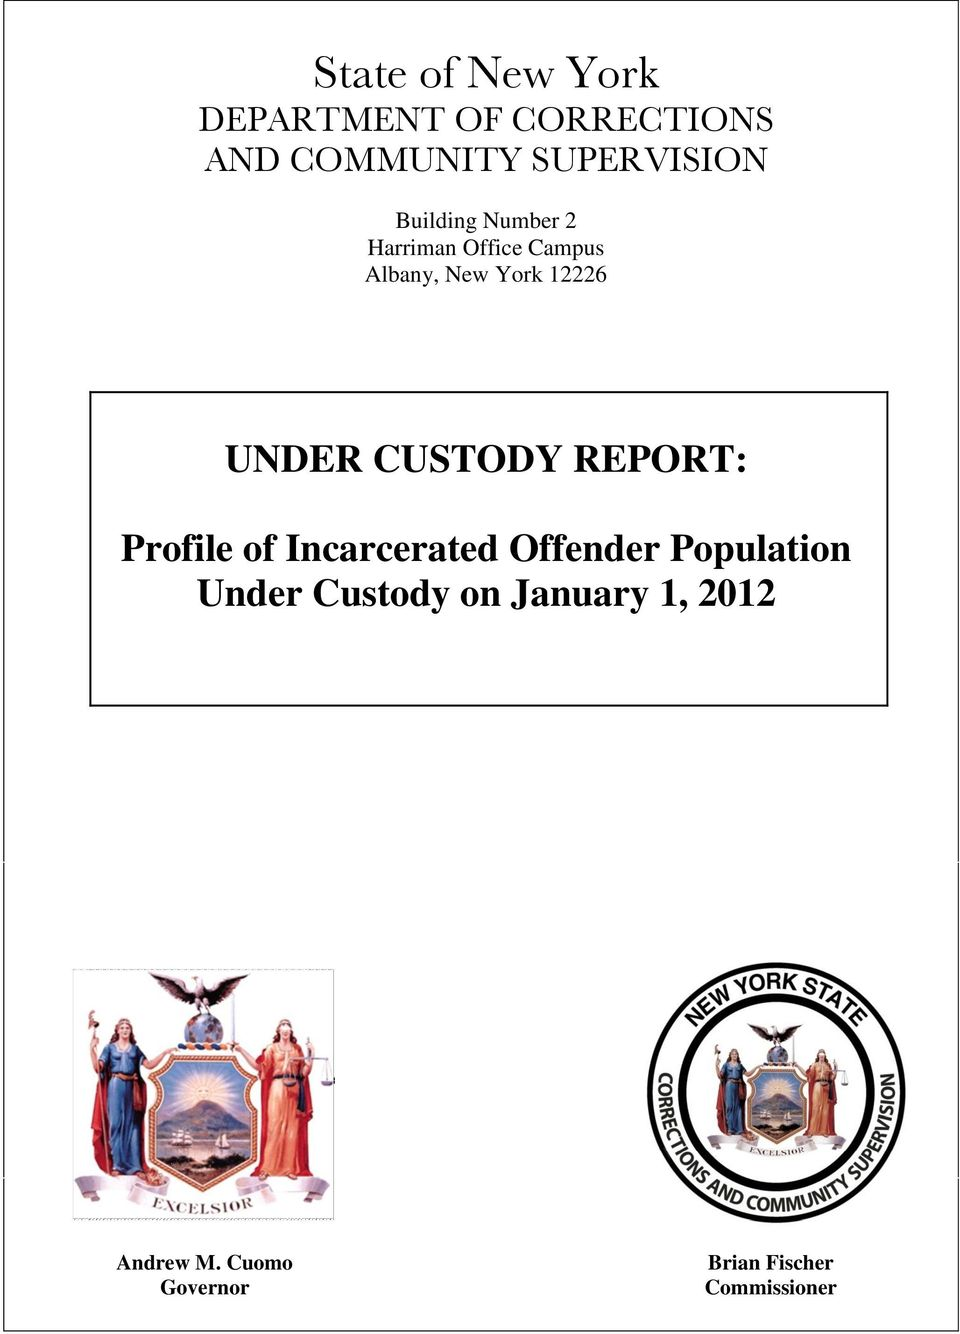 CUSTODY REPORT: Profile of Incarcerated Offender Population Under